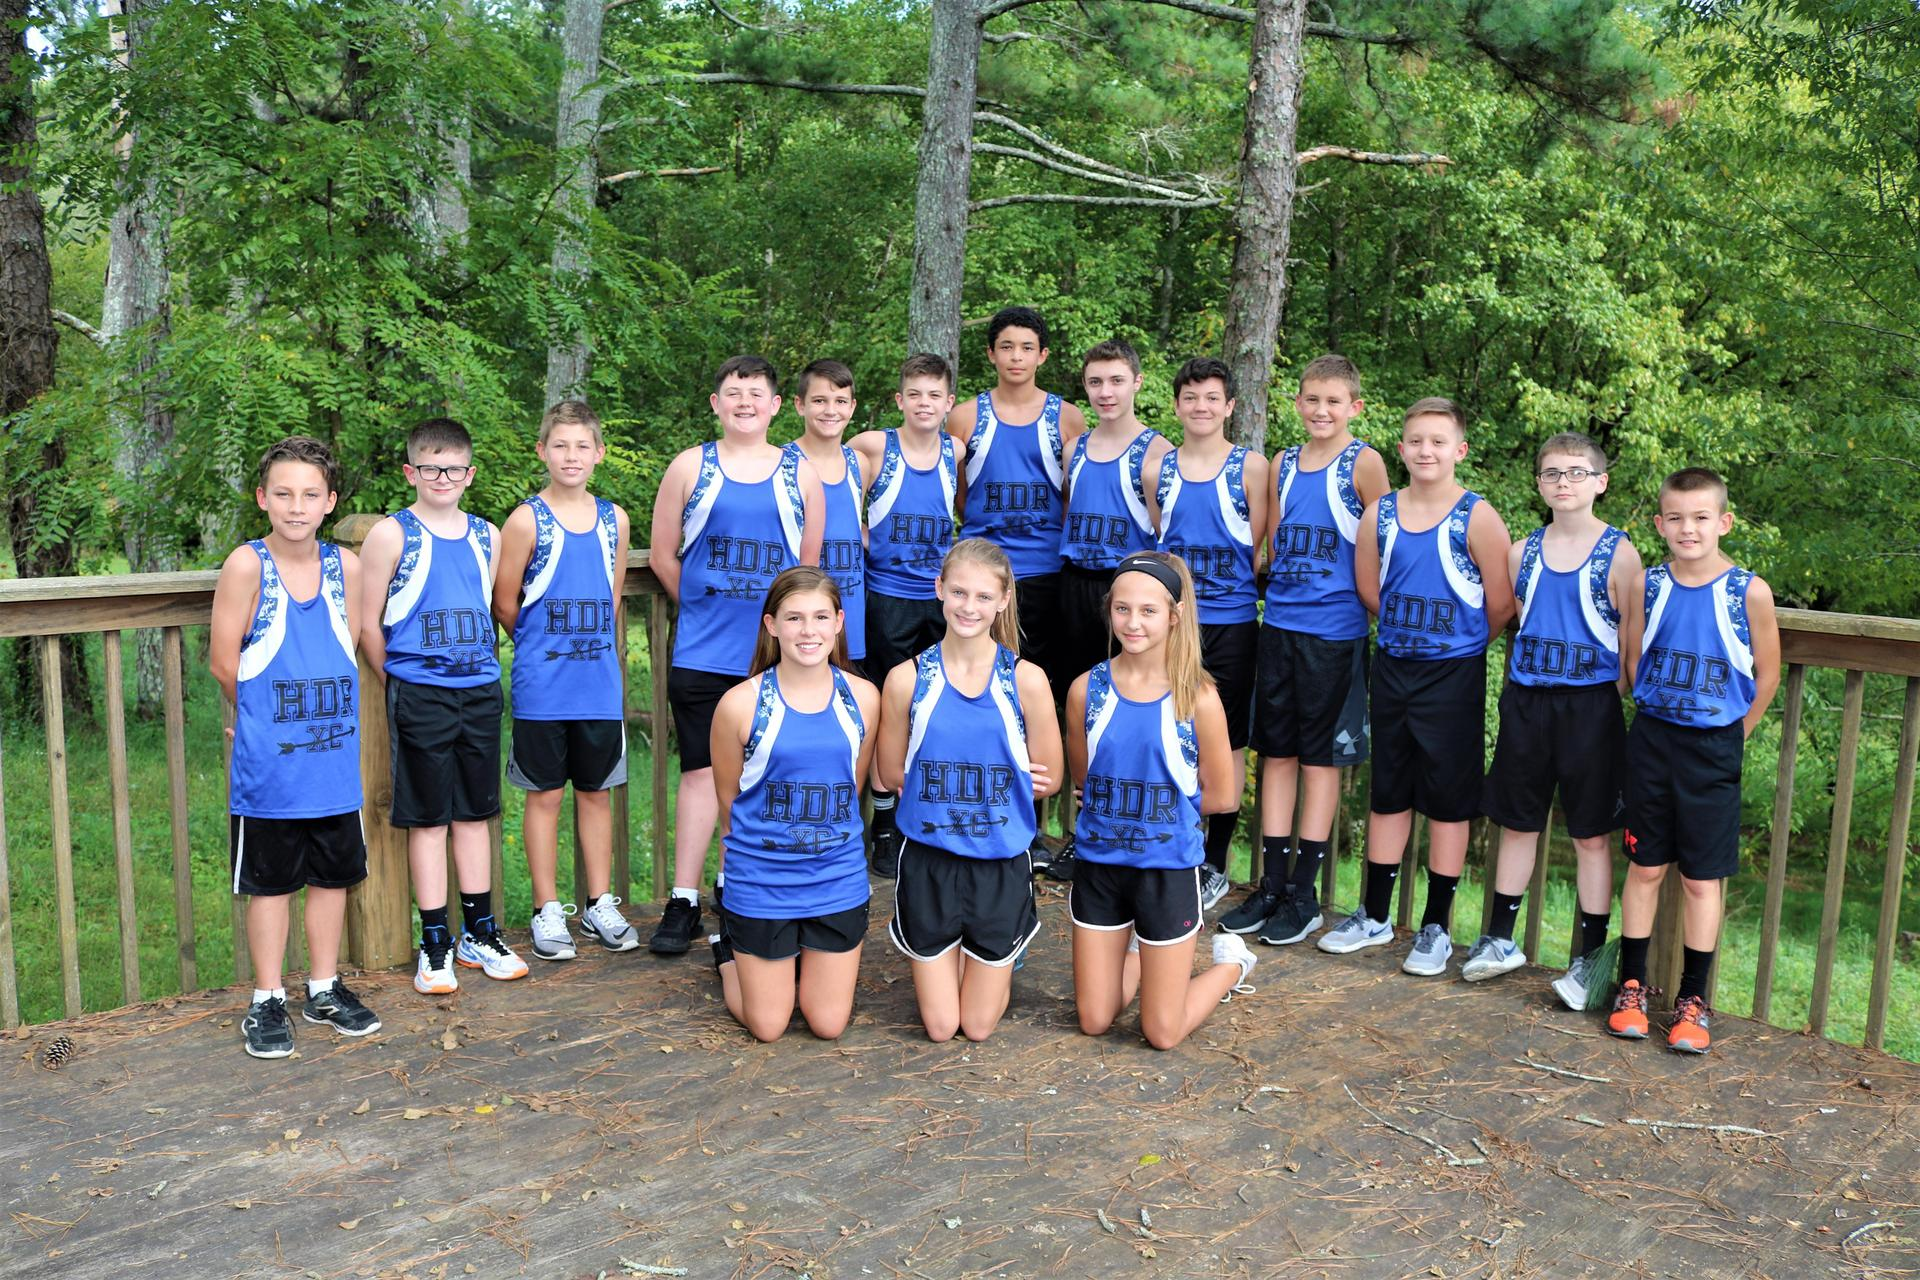 REMS Cross Country Team